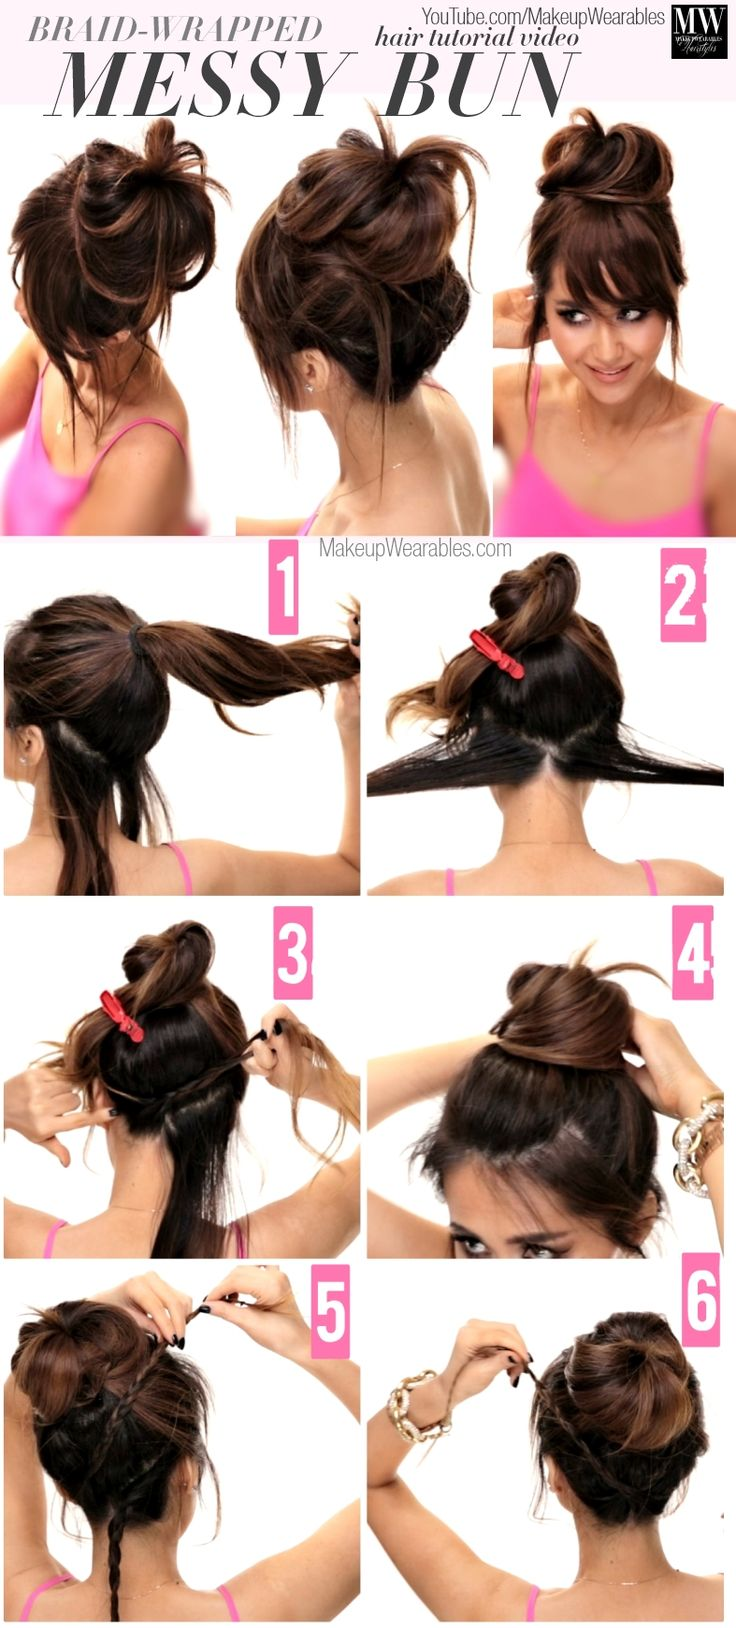 gow to create a big braided messy bun updo 4 Lazy Girls Easy Hairstyles | How to...